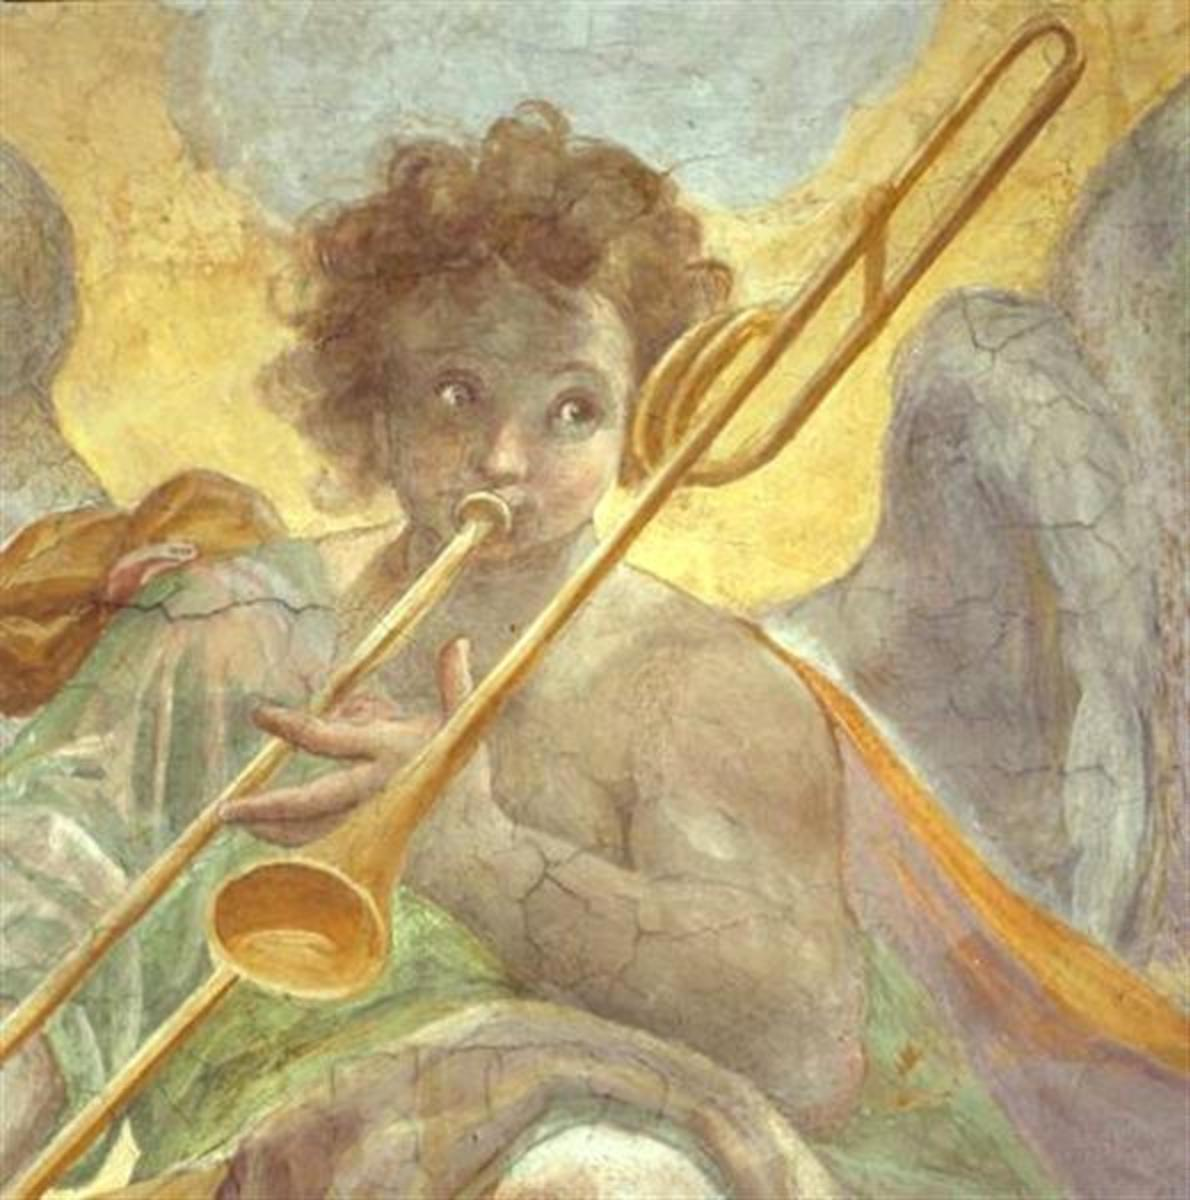 how-to-hold-a-sackbut-the-grip-of-the-trombone-throughout-history